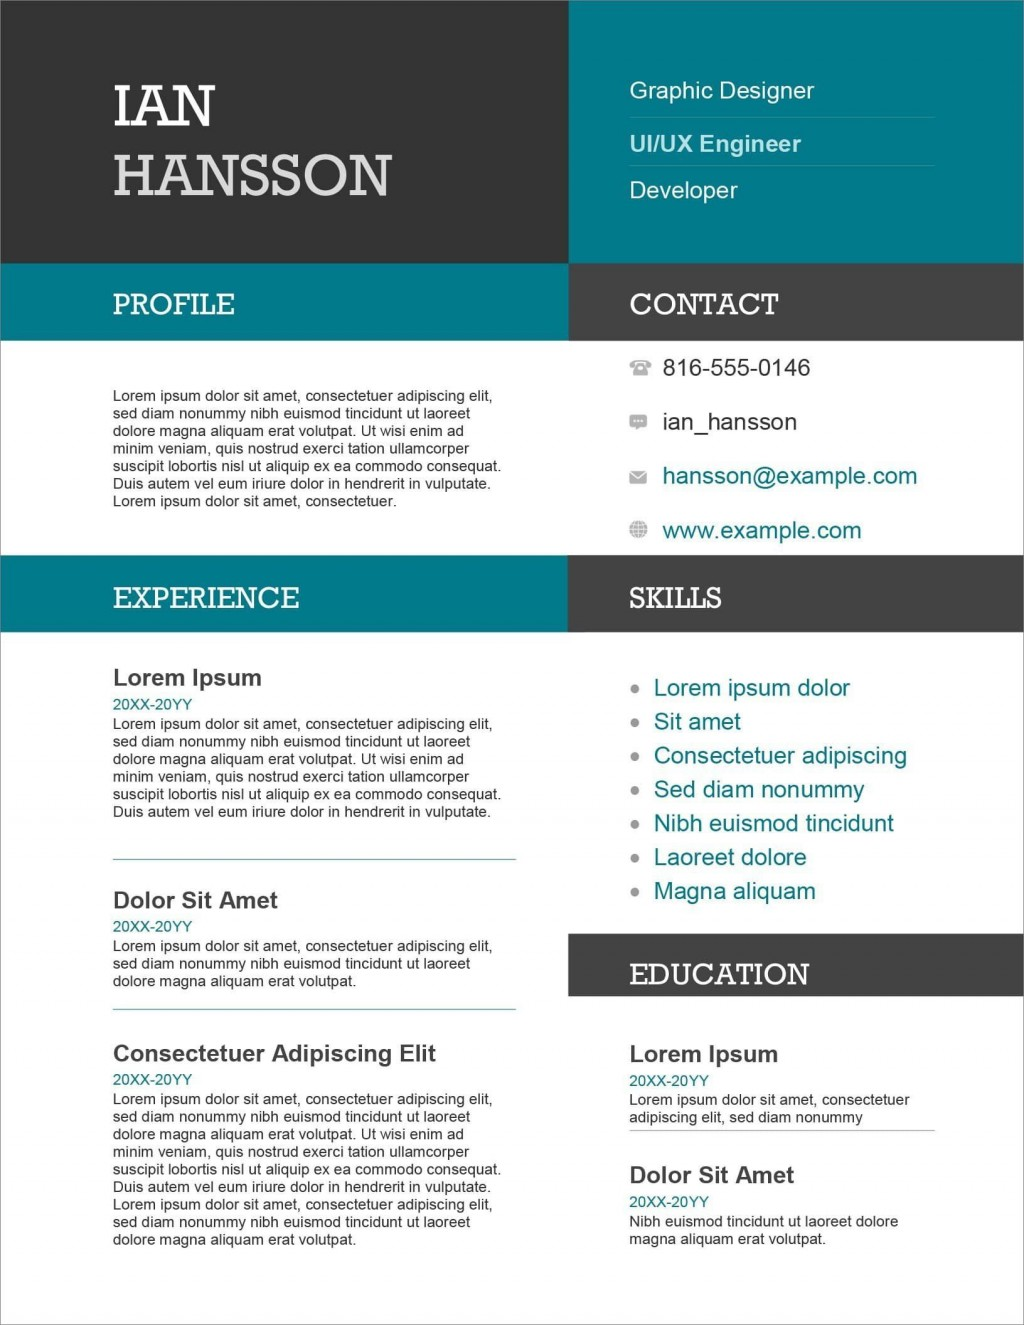 005 Awesome Resume Microsoft Word Template High Resolution  Cv/resume Design Tutorial With Federal DownloadLarge